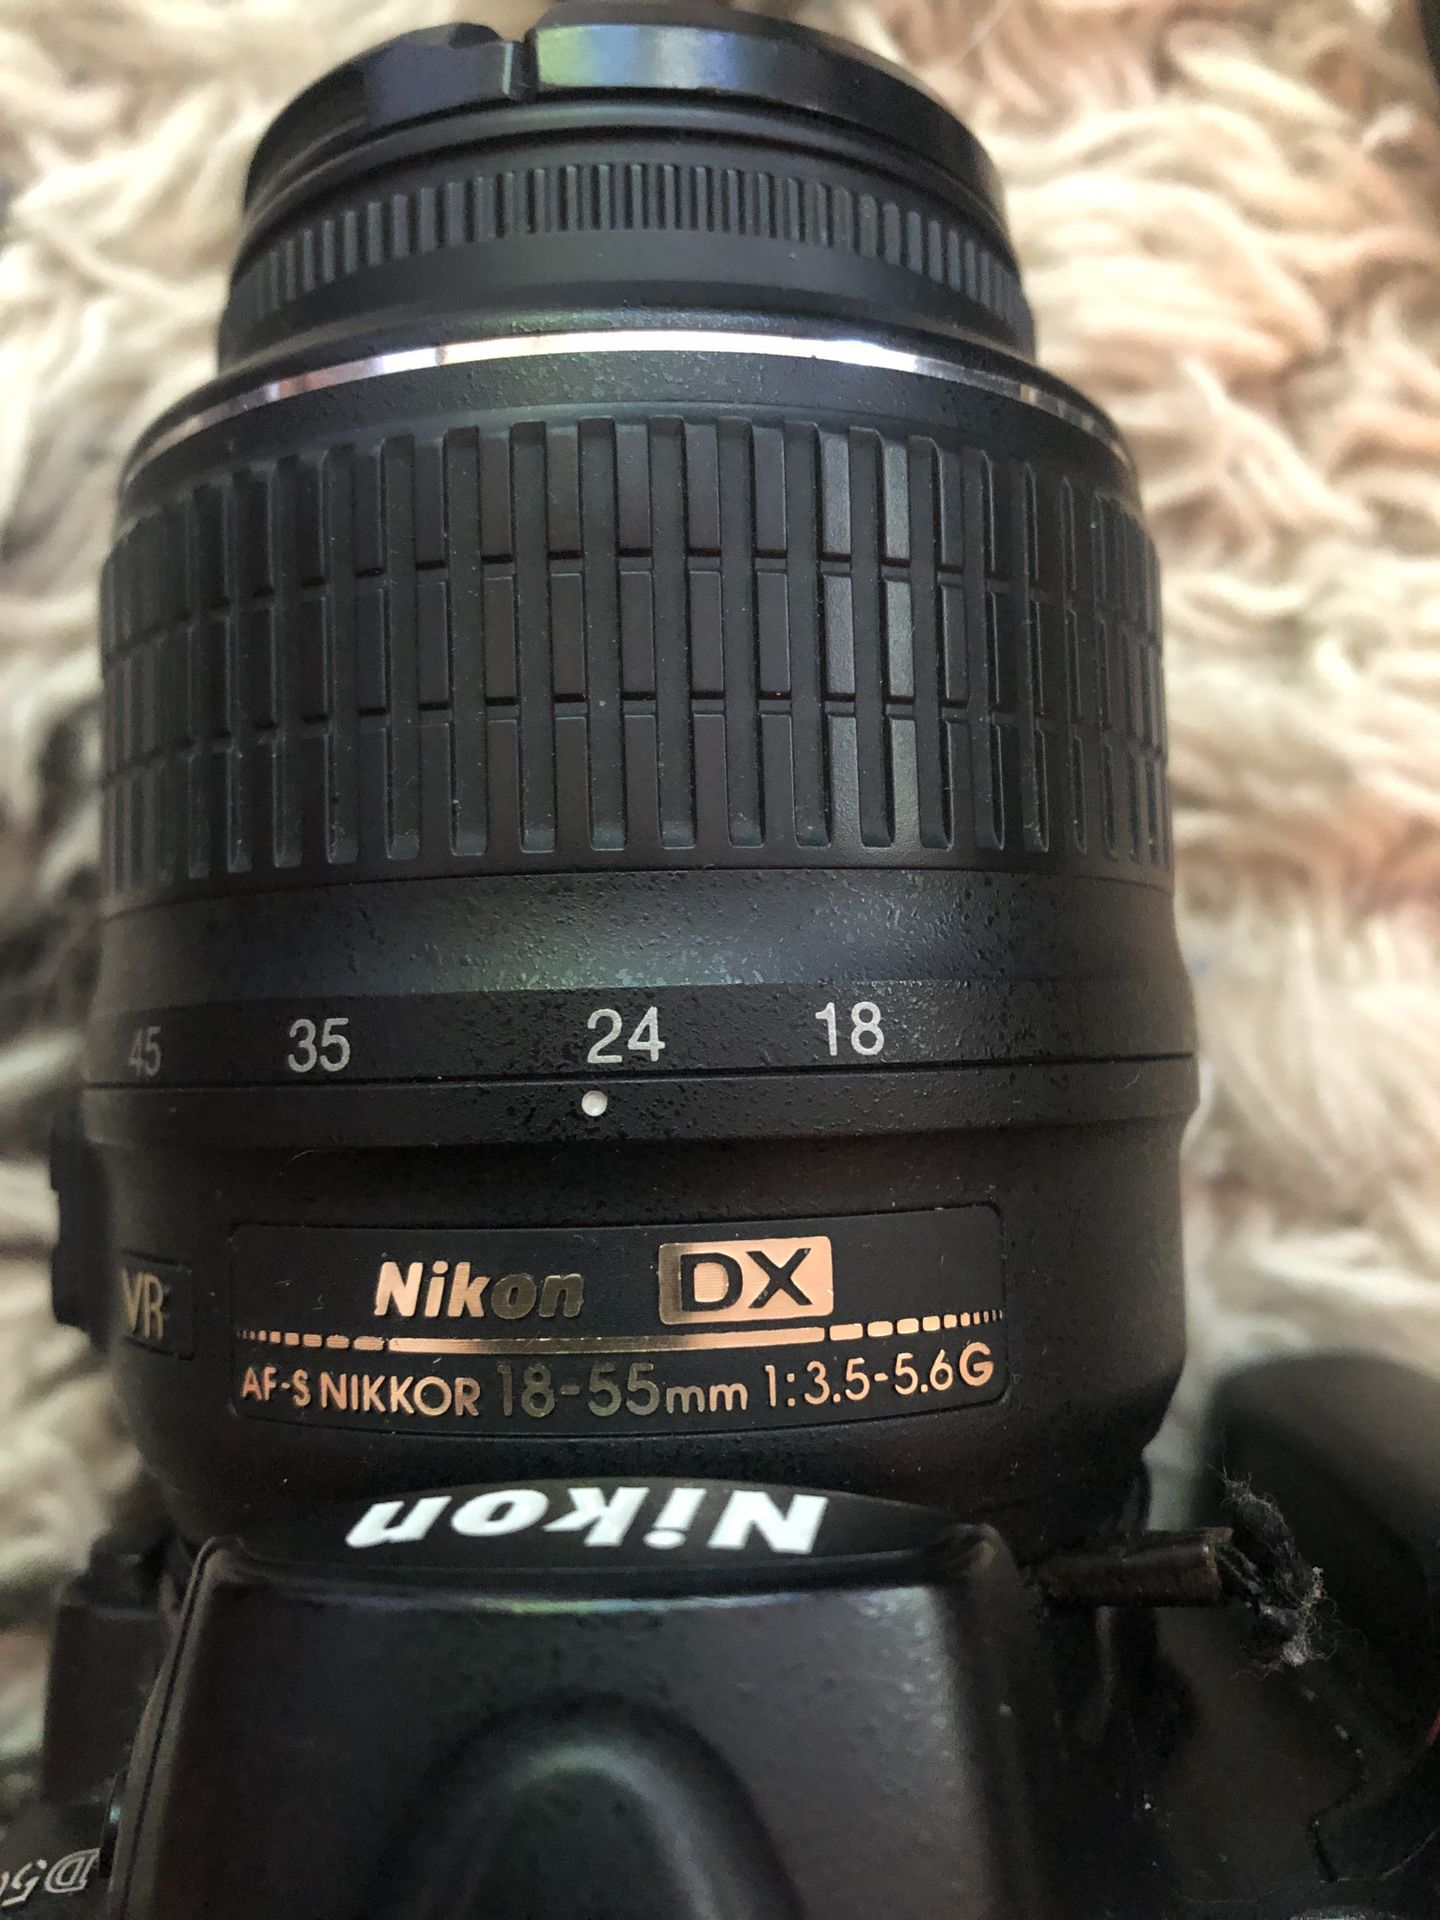 Nikon D5000 plus two lenses, carry case, charger and more